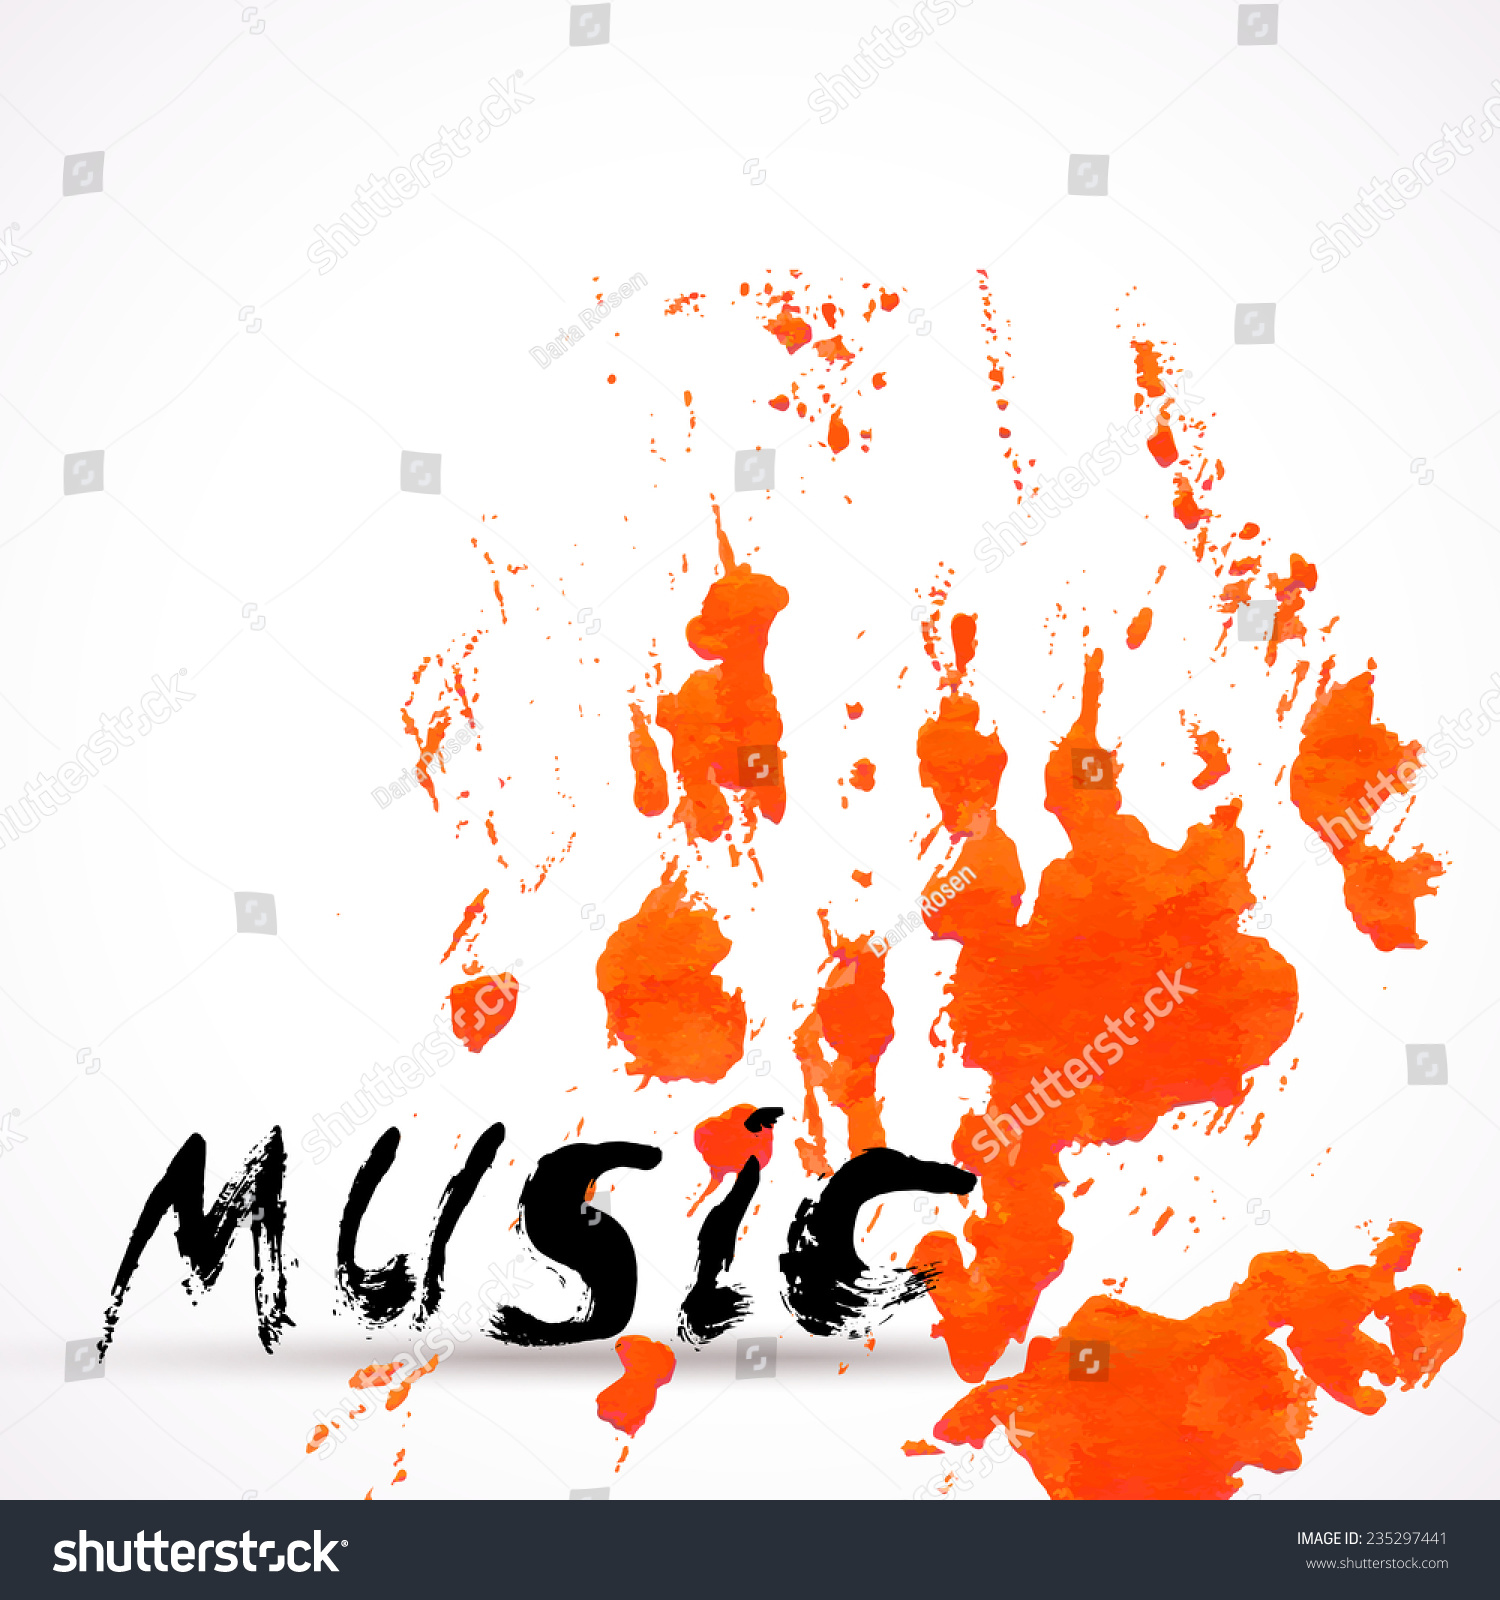 Vector Background With Watercolor Texture Orange Color Splash And Hand Written Word Music Design